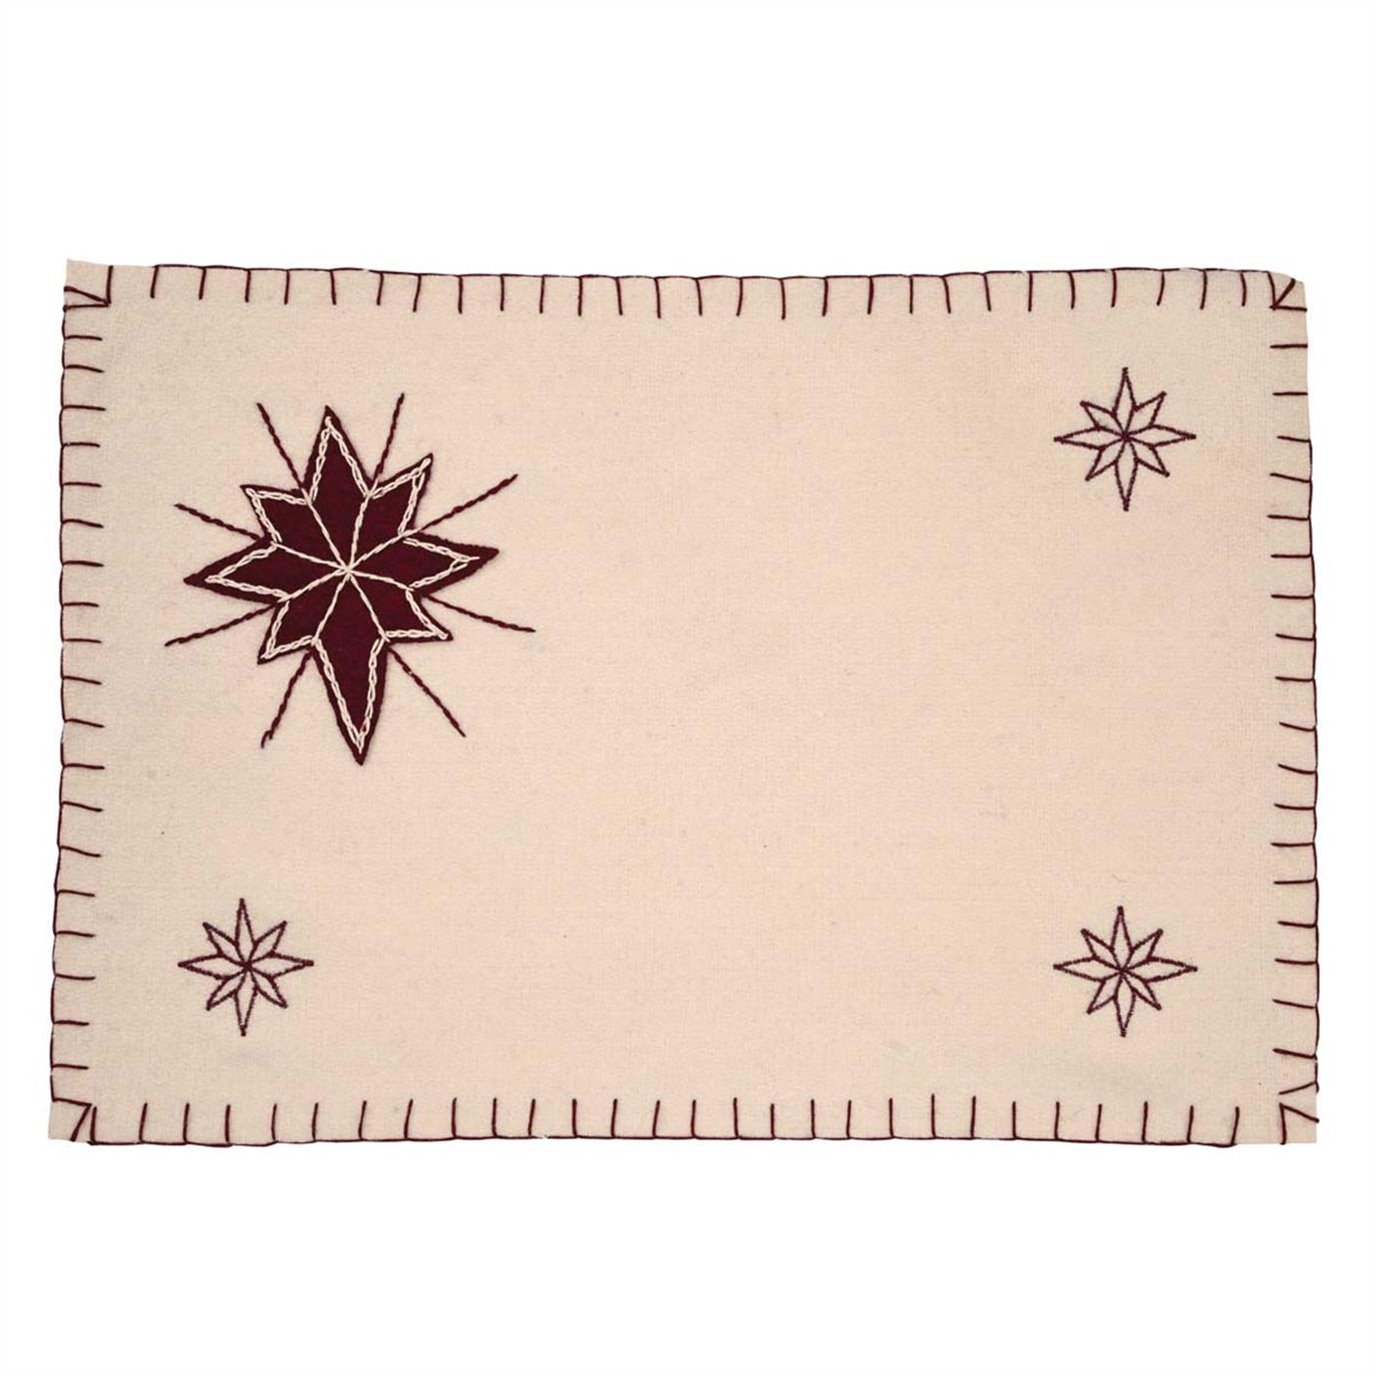 North Star Placemat Set of 6 12x18